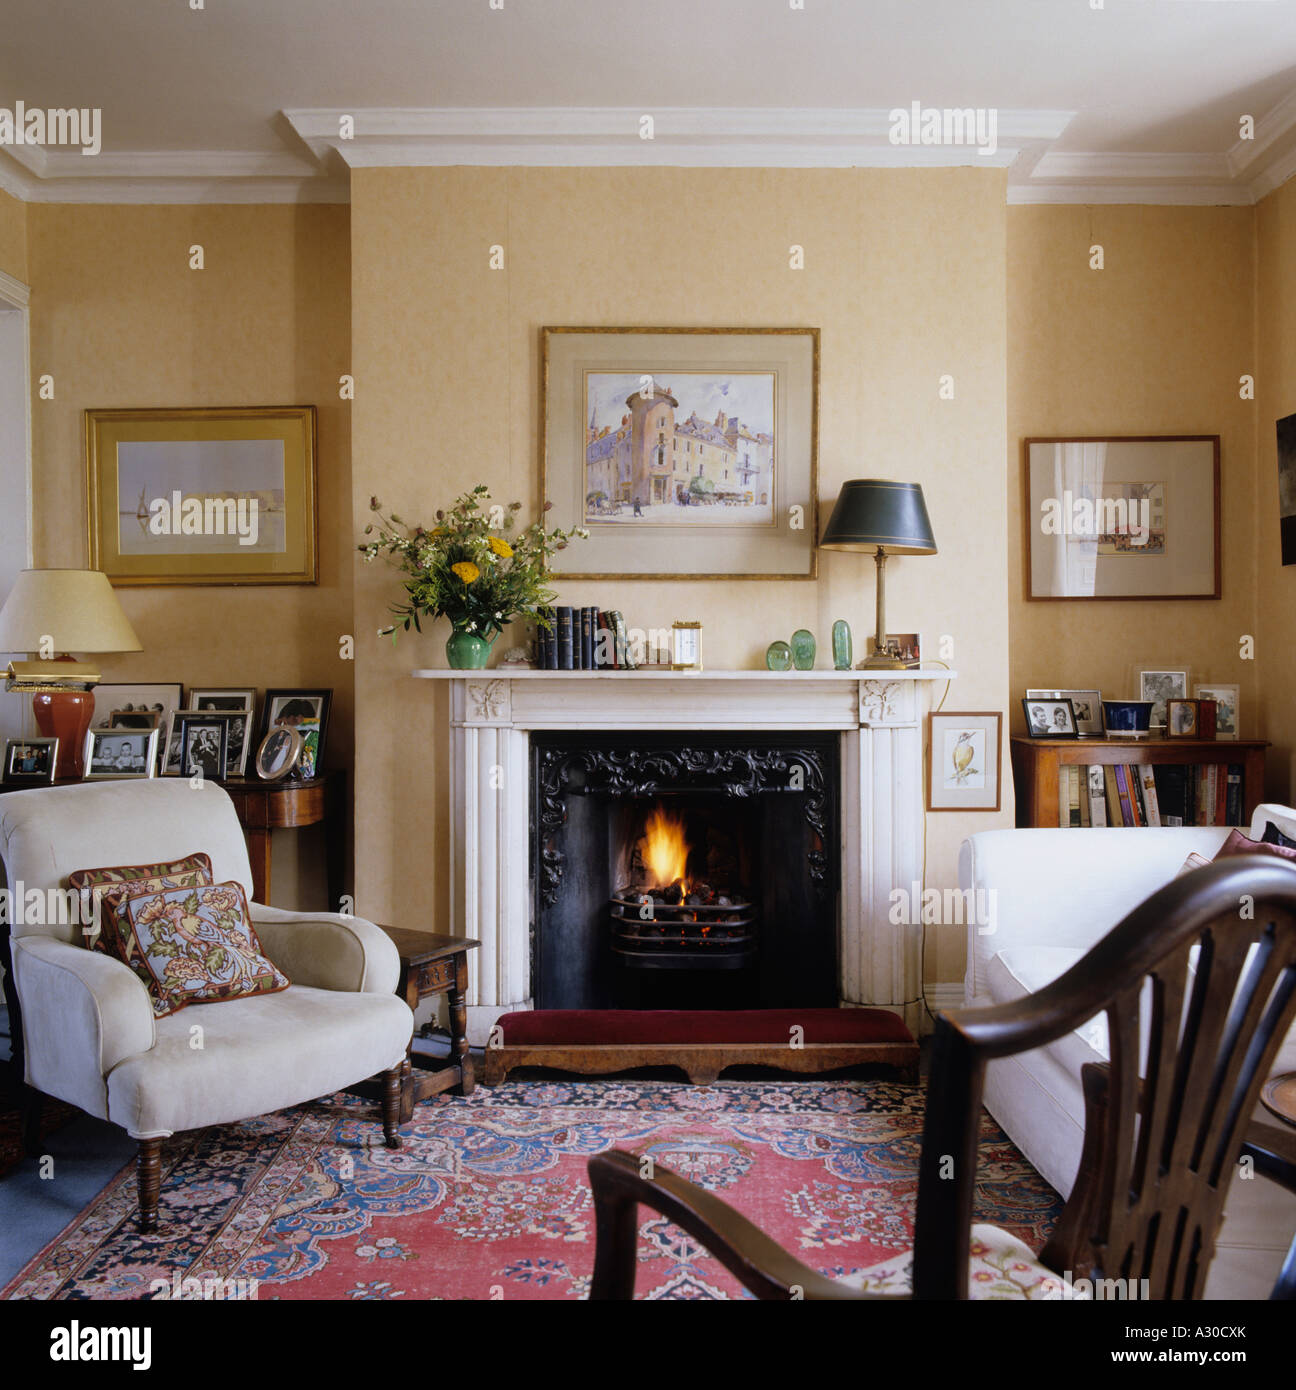 English country style living room with mantel piece arm chair and stock photo royalty free - Country style living room ...